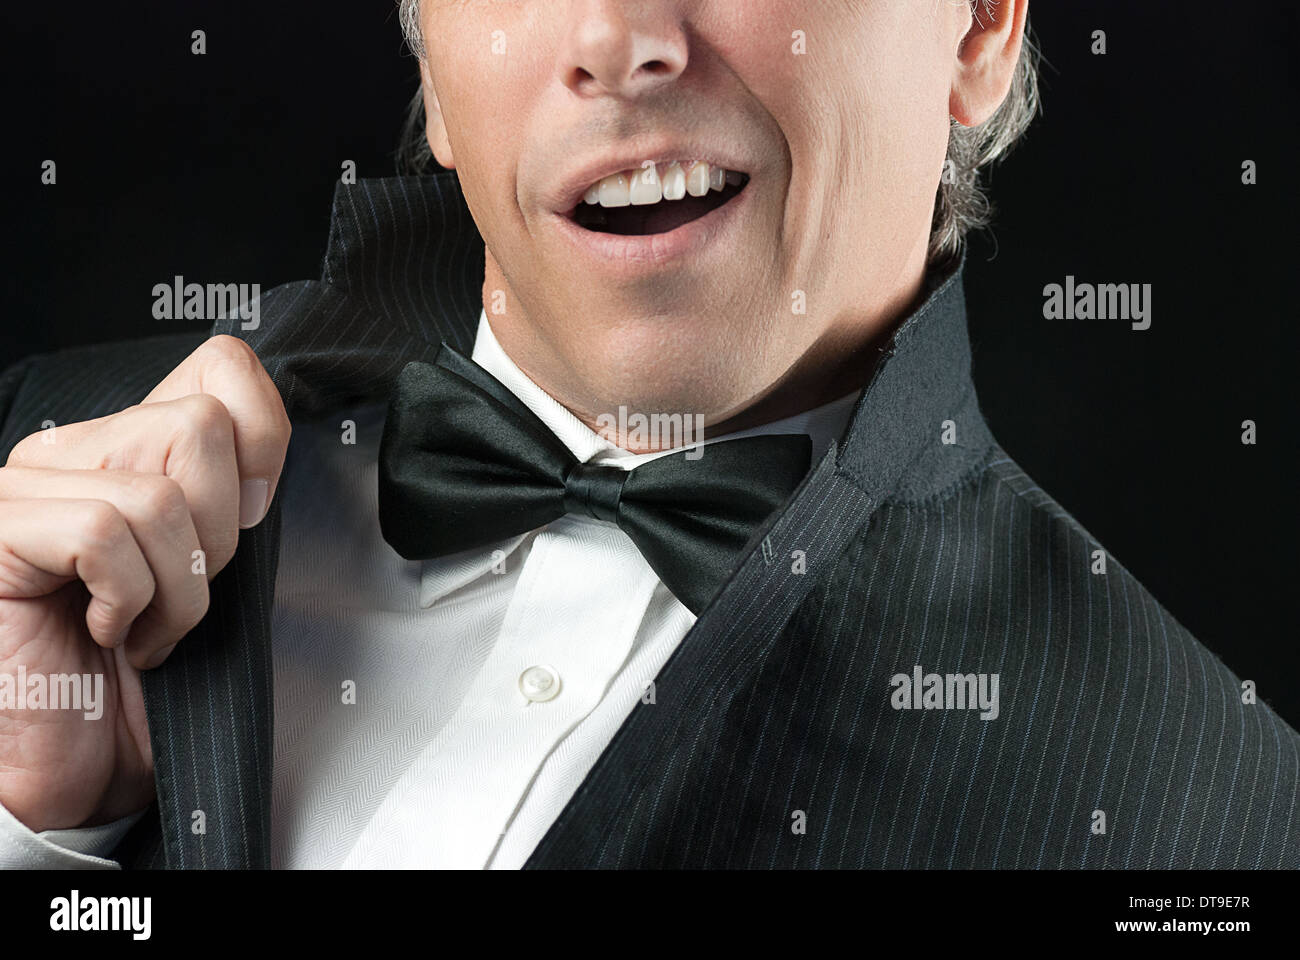 Close-up of a man in a tux doing an Elvis impression. - Stock Image